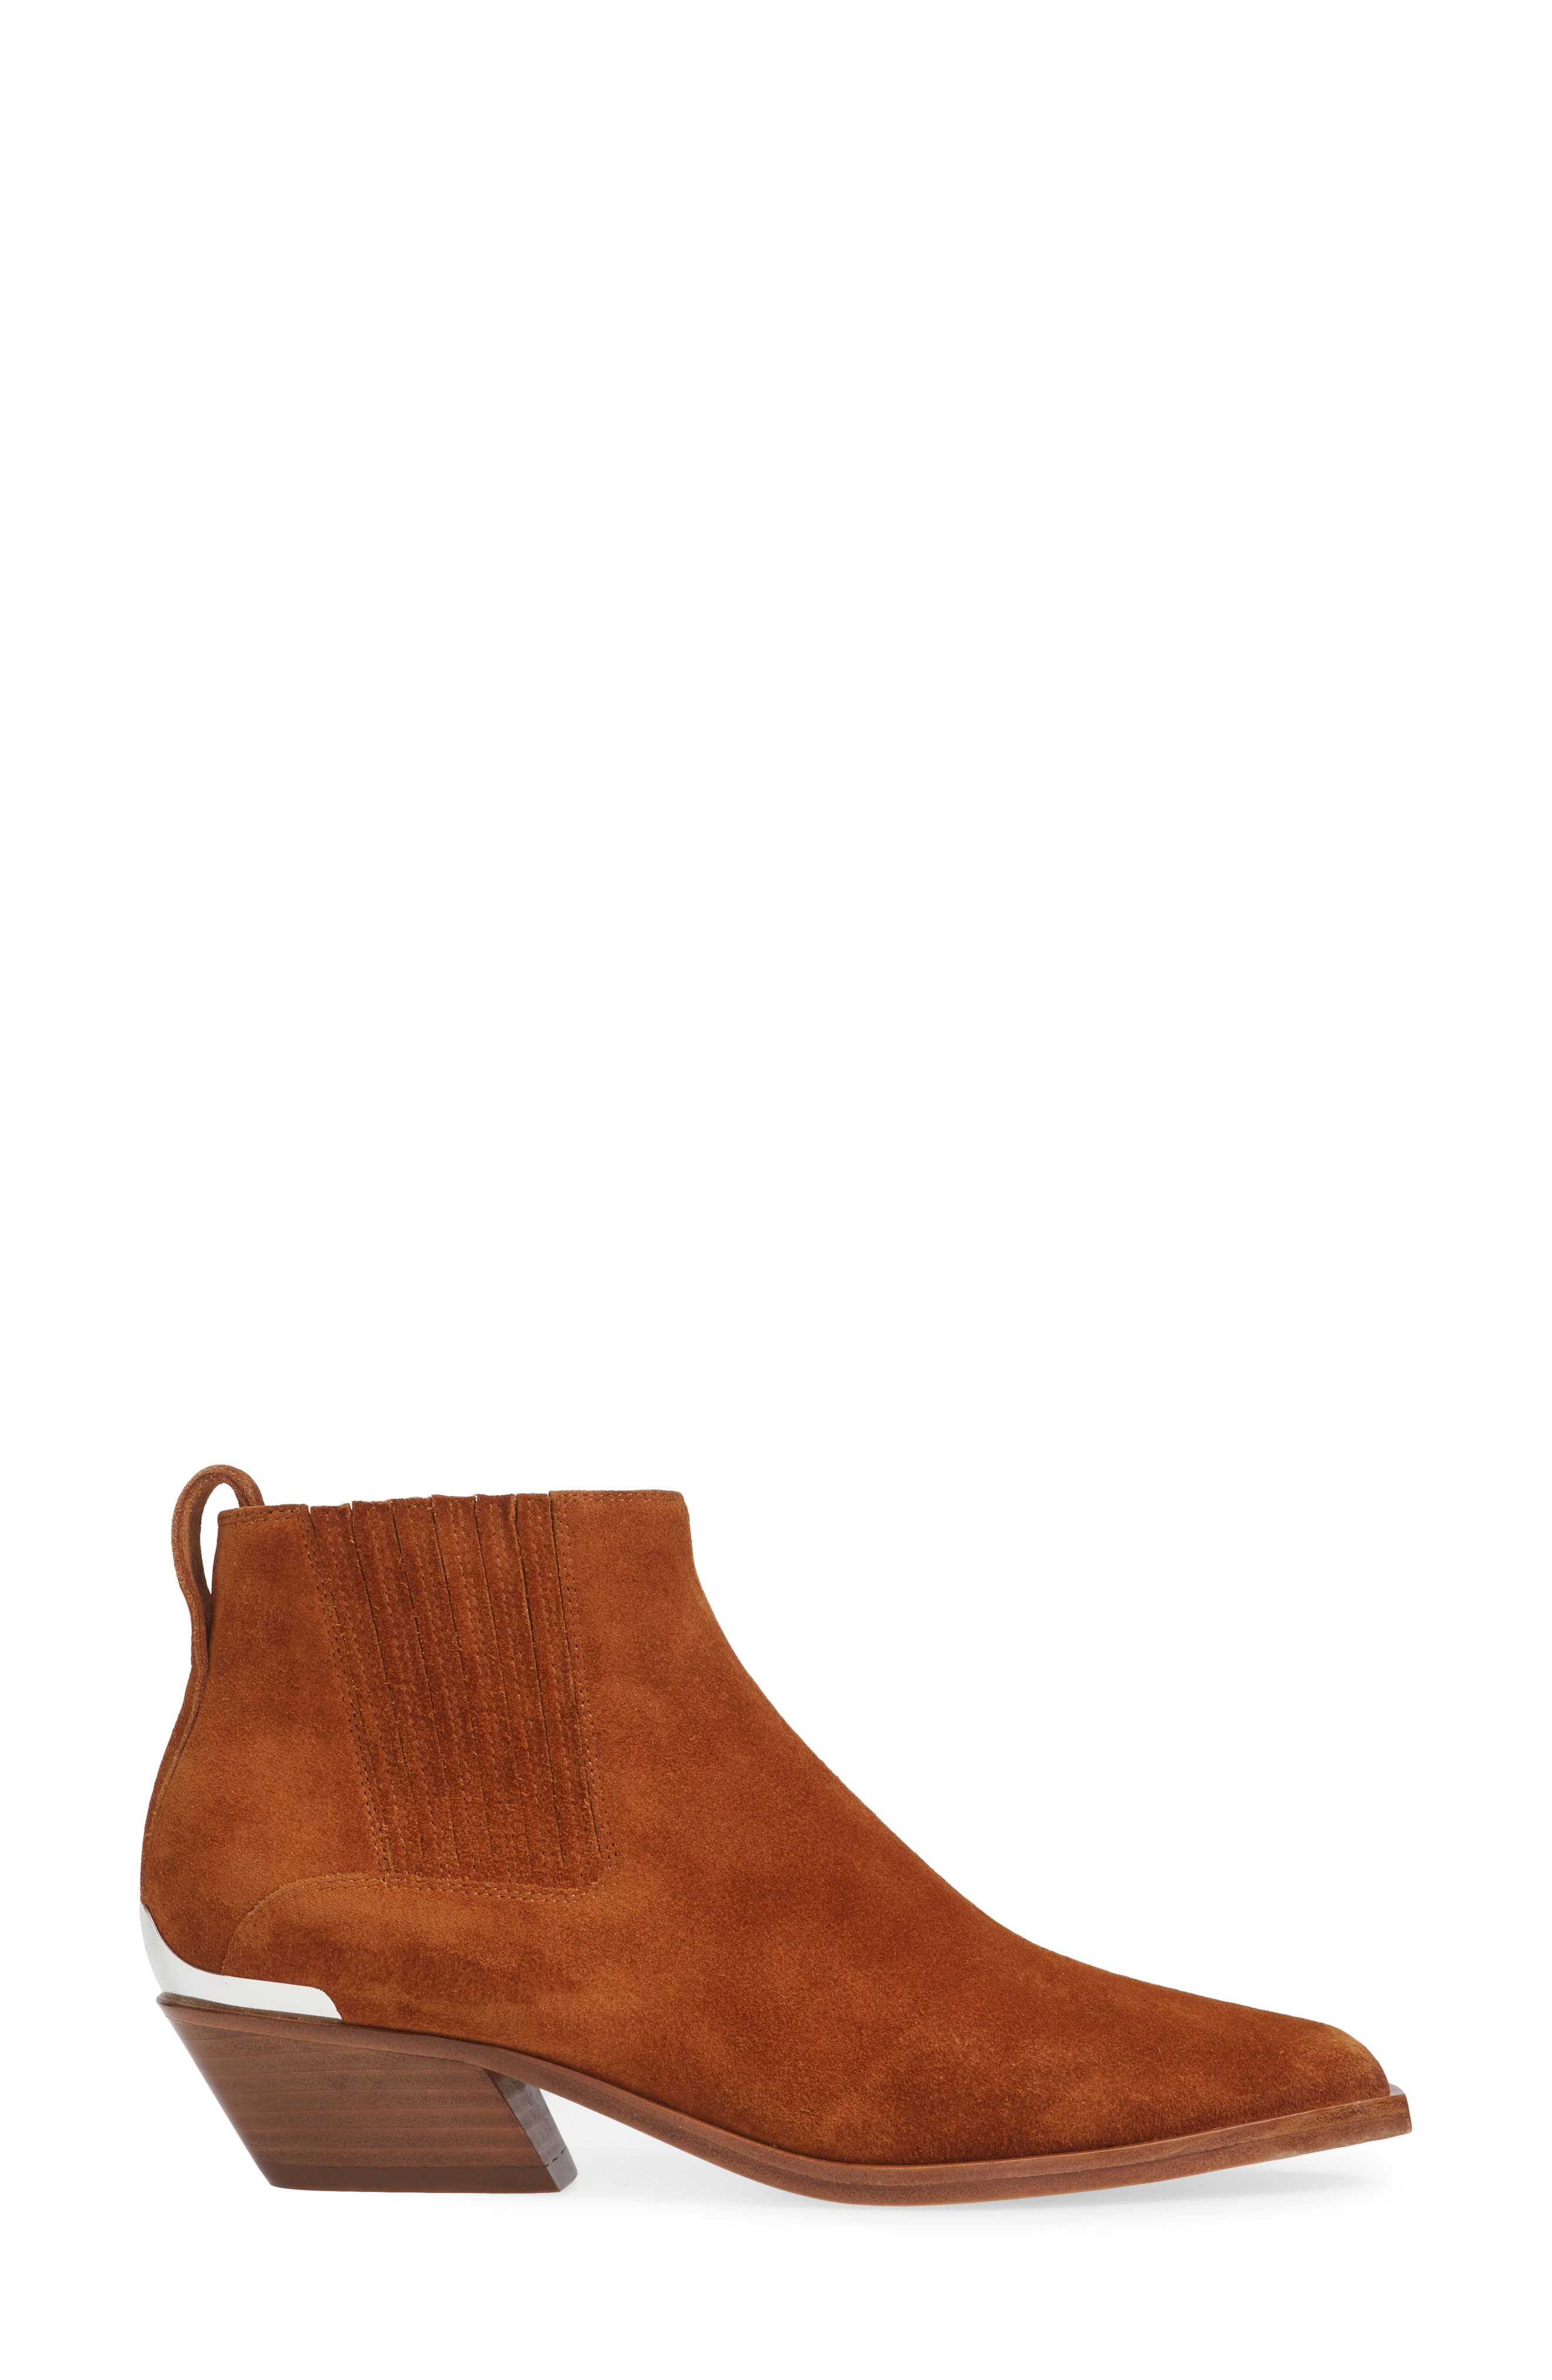 Westin Bootie,                             Alternate thumbnail 3, color,                             TAN SUEDE